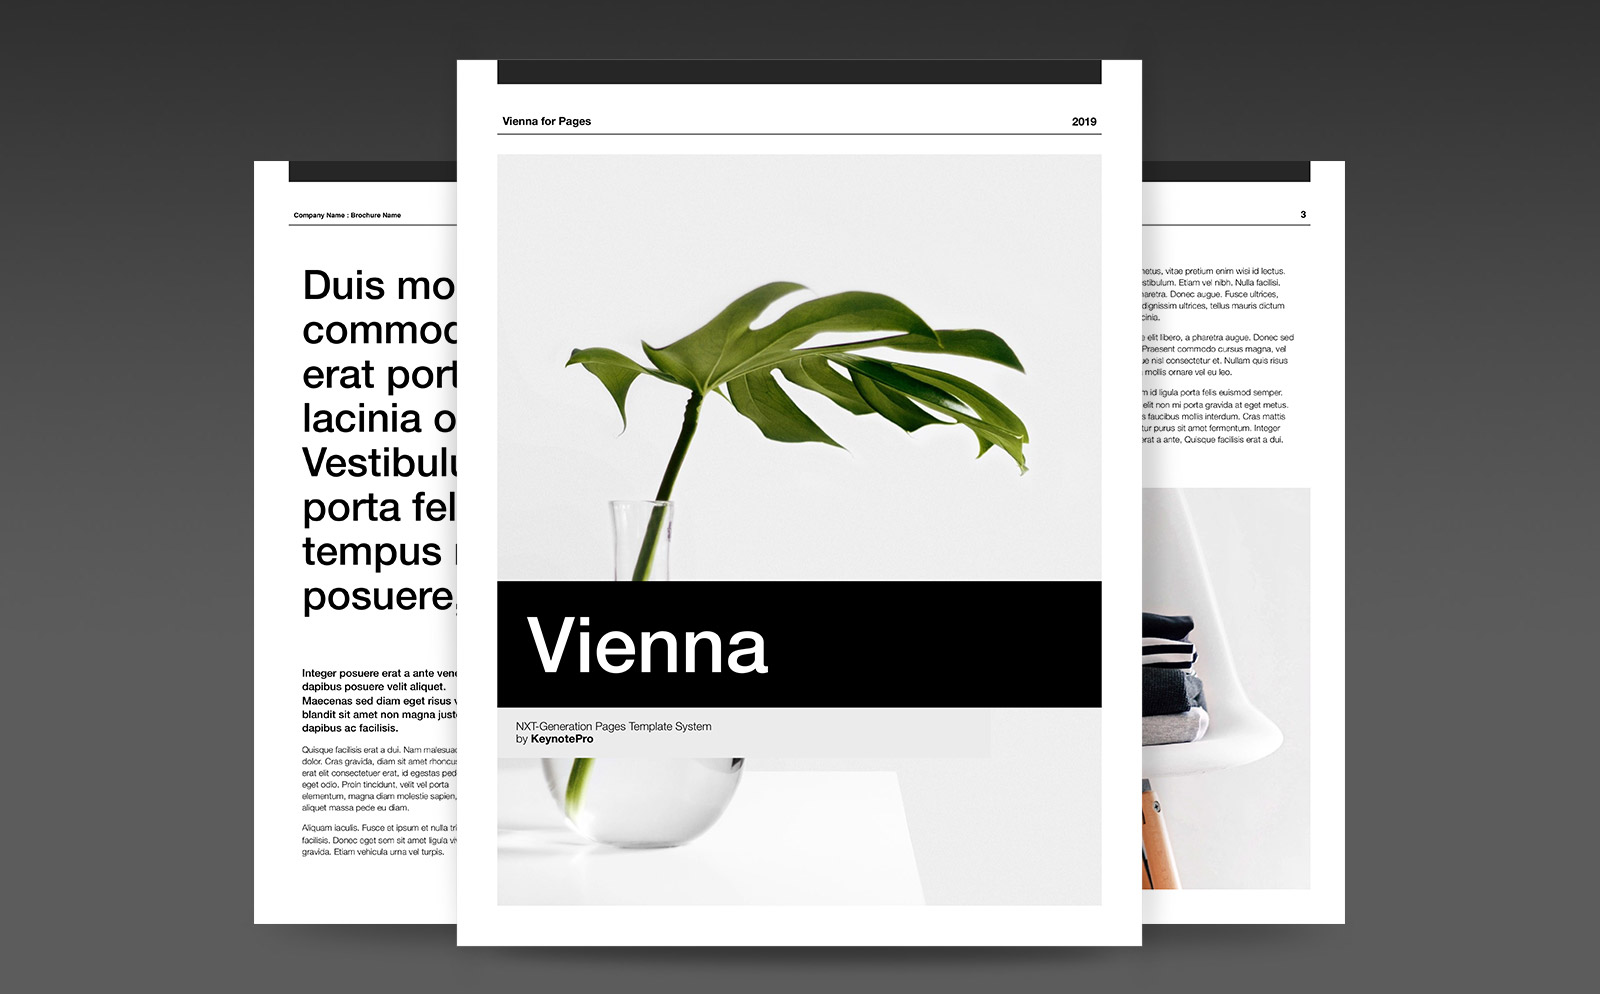 Vienna (NXT) Template System for Pages